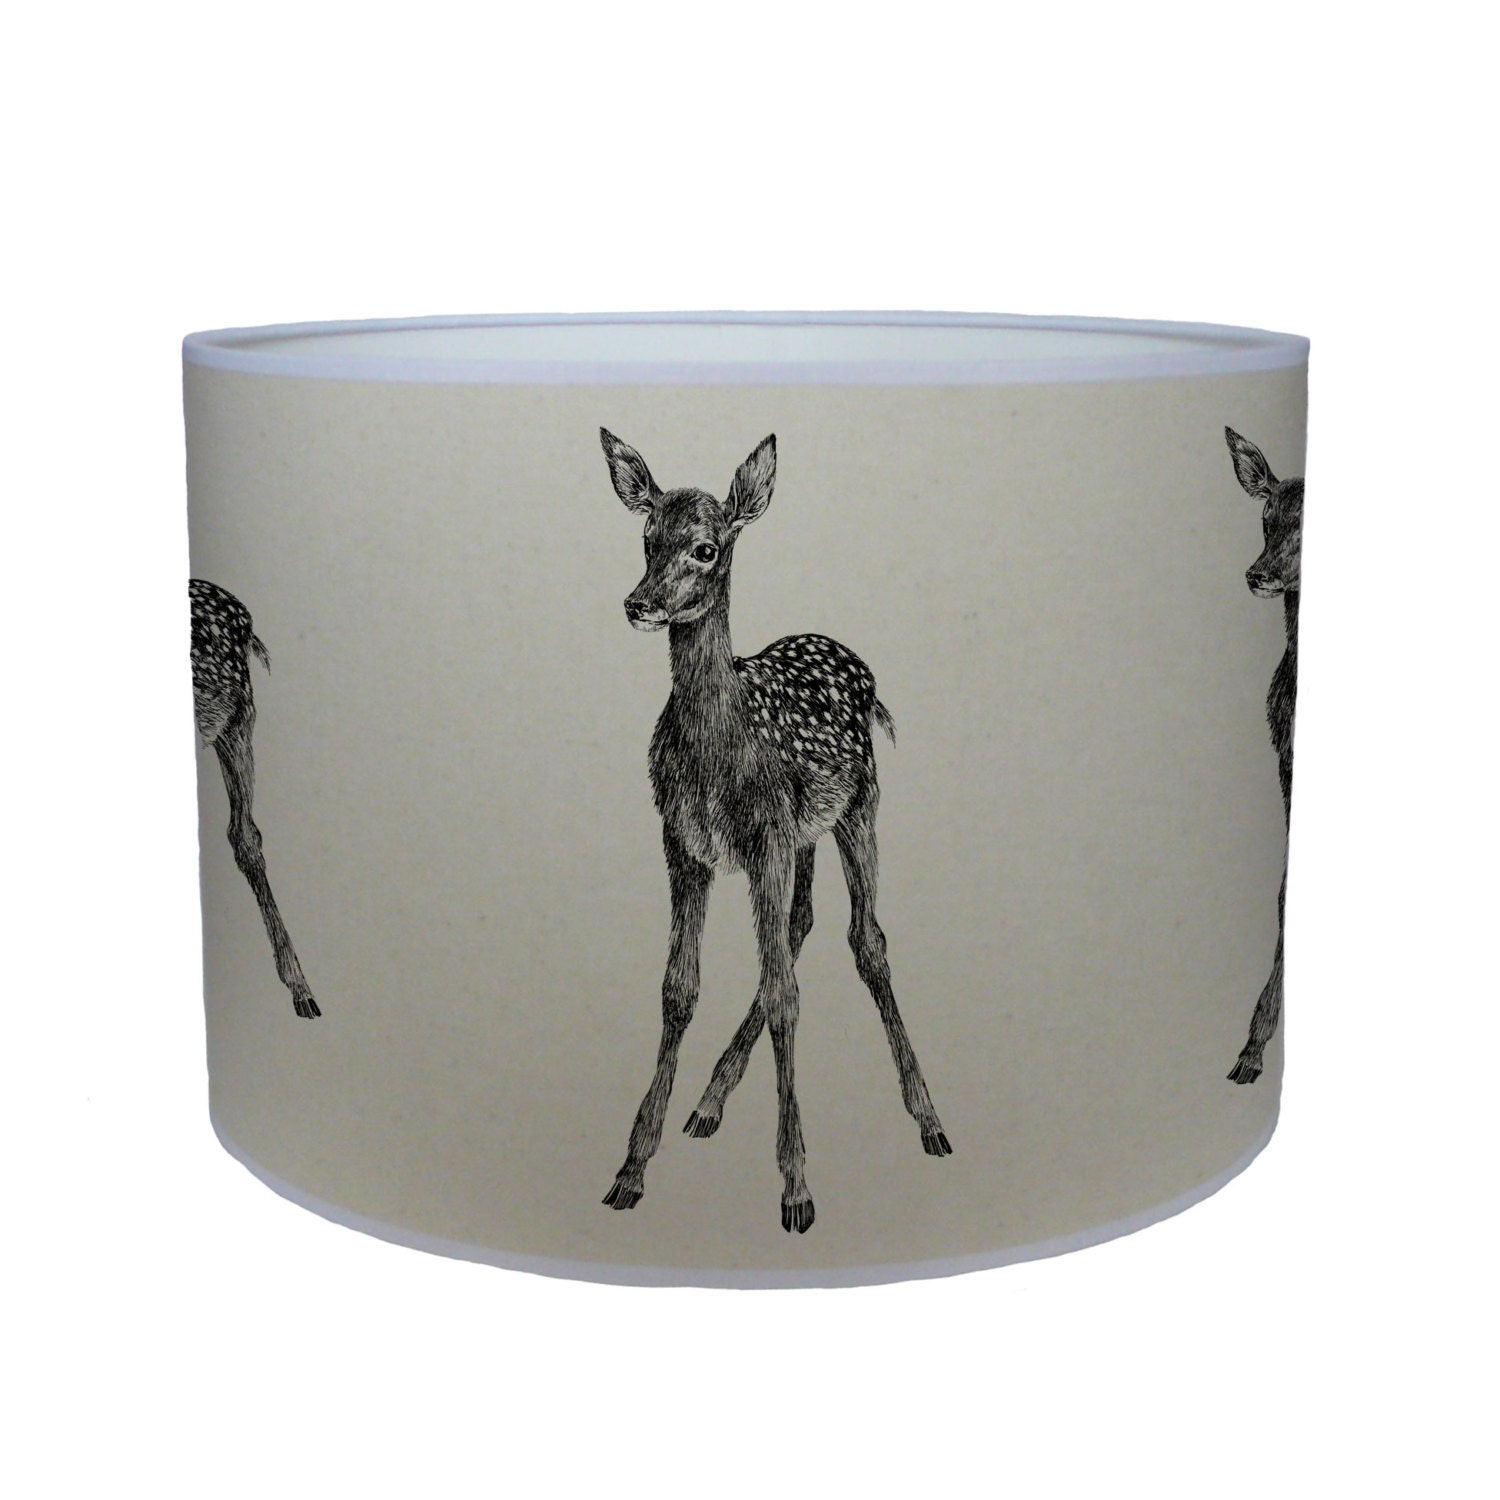 Deer shade lamp shade ceiling shade drum lampshade lighting  handmade home animal nursery